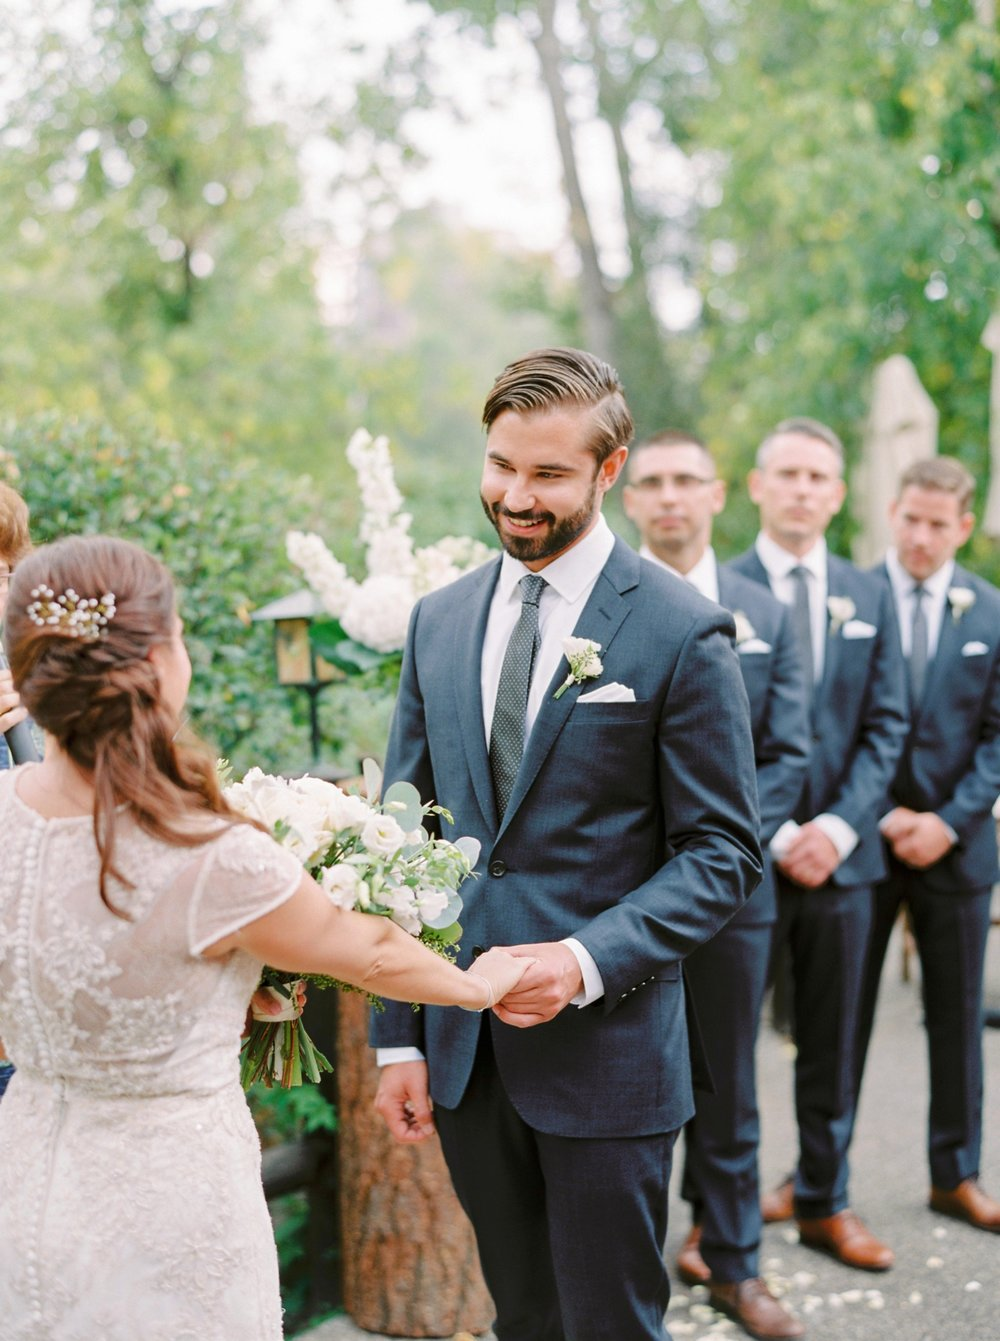 Calgary wedding photographers | fine art film | Justine Milton Photography | wedding inspiration | wedding chairs | wedding flowers | wedding ceremony | bride and groom